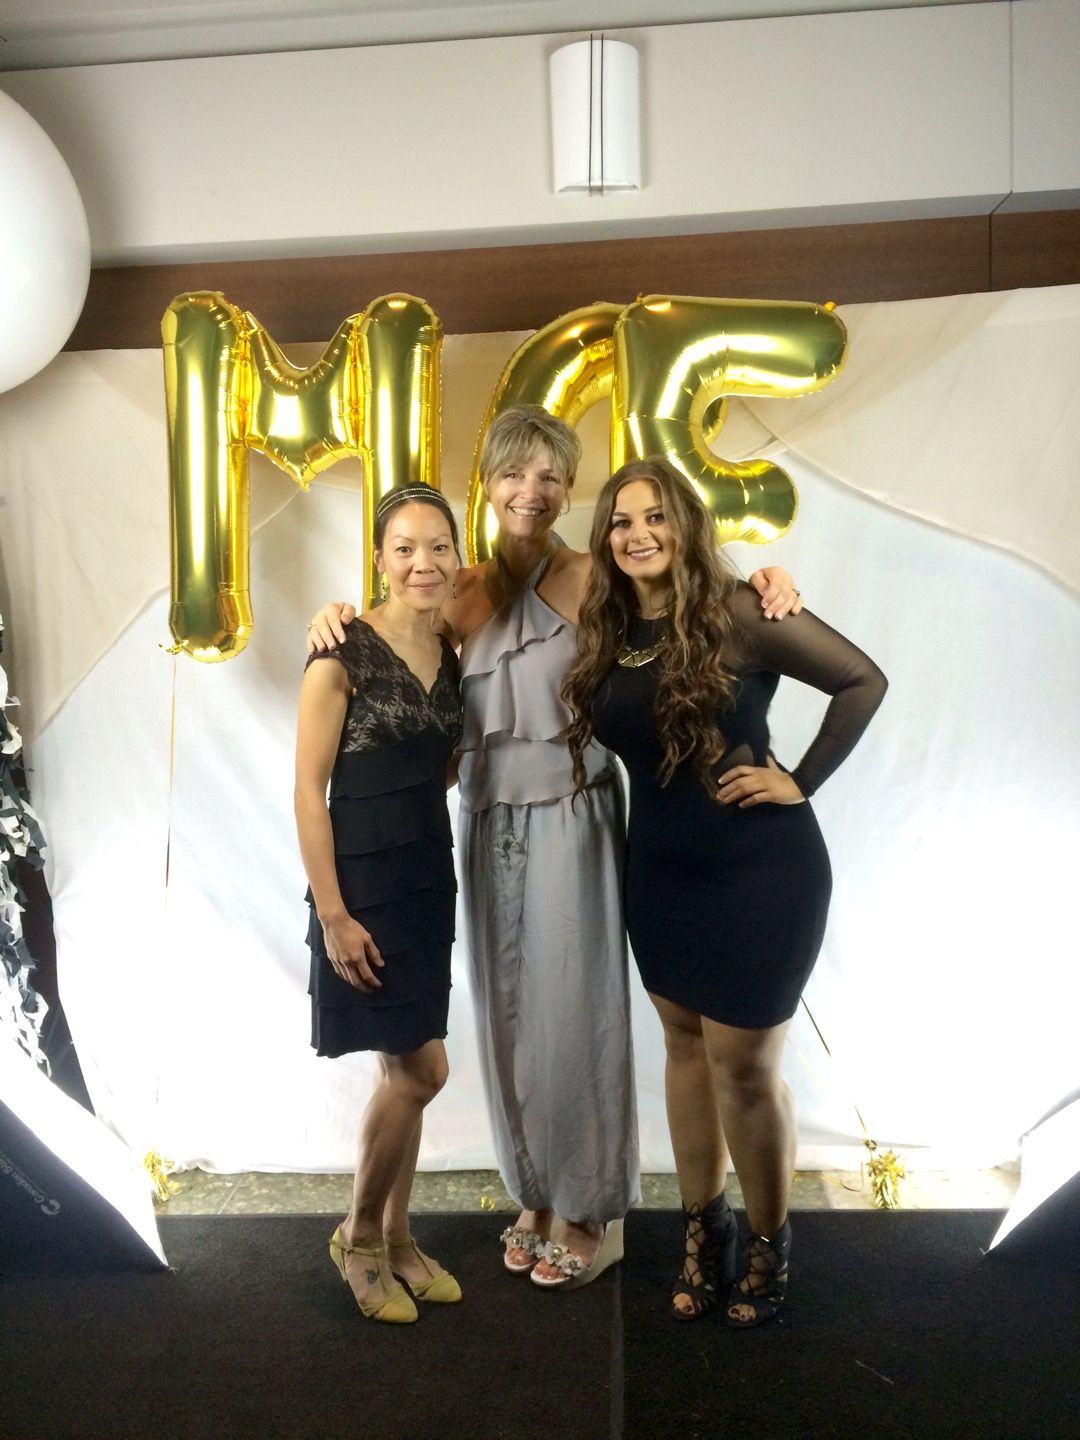 Dr. Sandi Dunn (CEO + Founder) pictured along side Dr. My-My Huynh (Research Scientist) and Luisa D'Amato (Research Technician) at the 21st Annual Michael Cuccione Foundation Gala